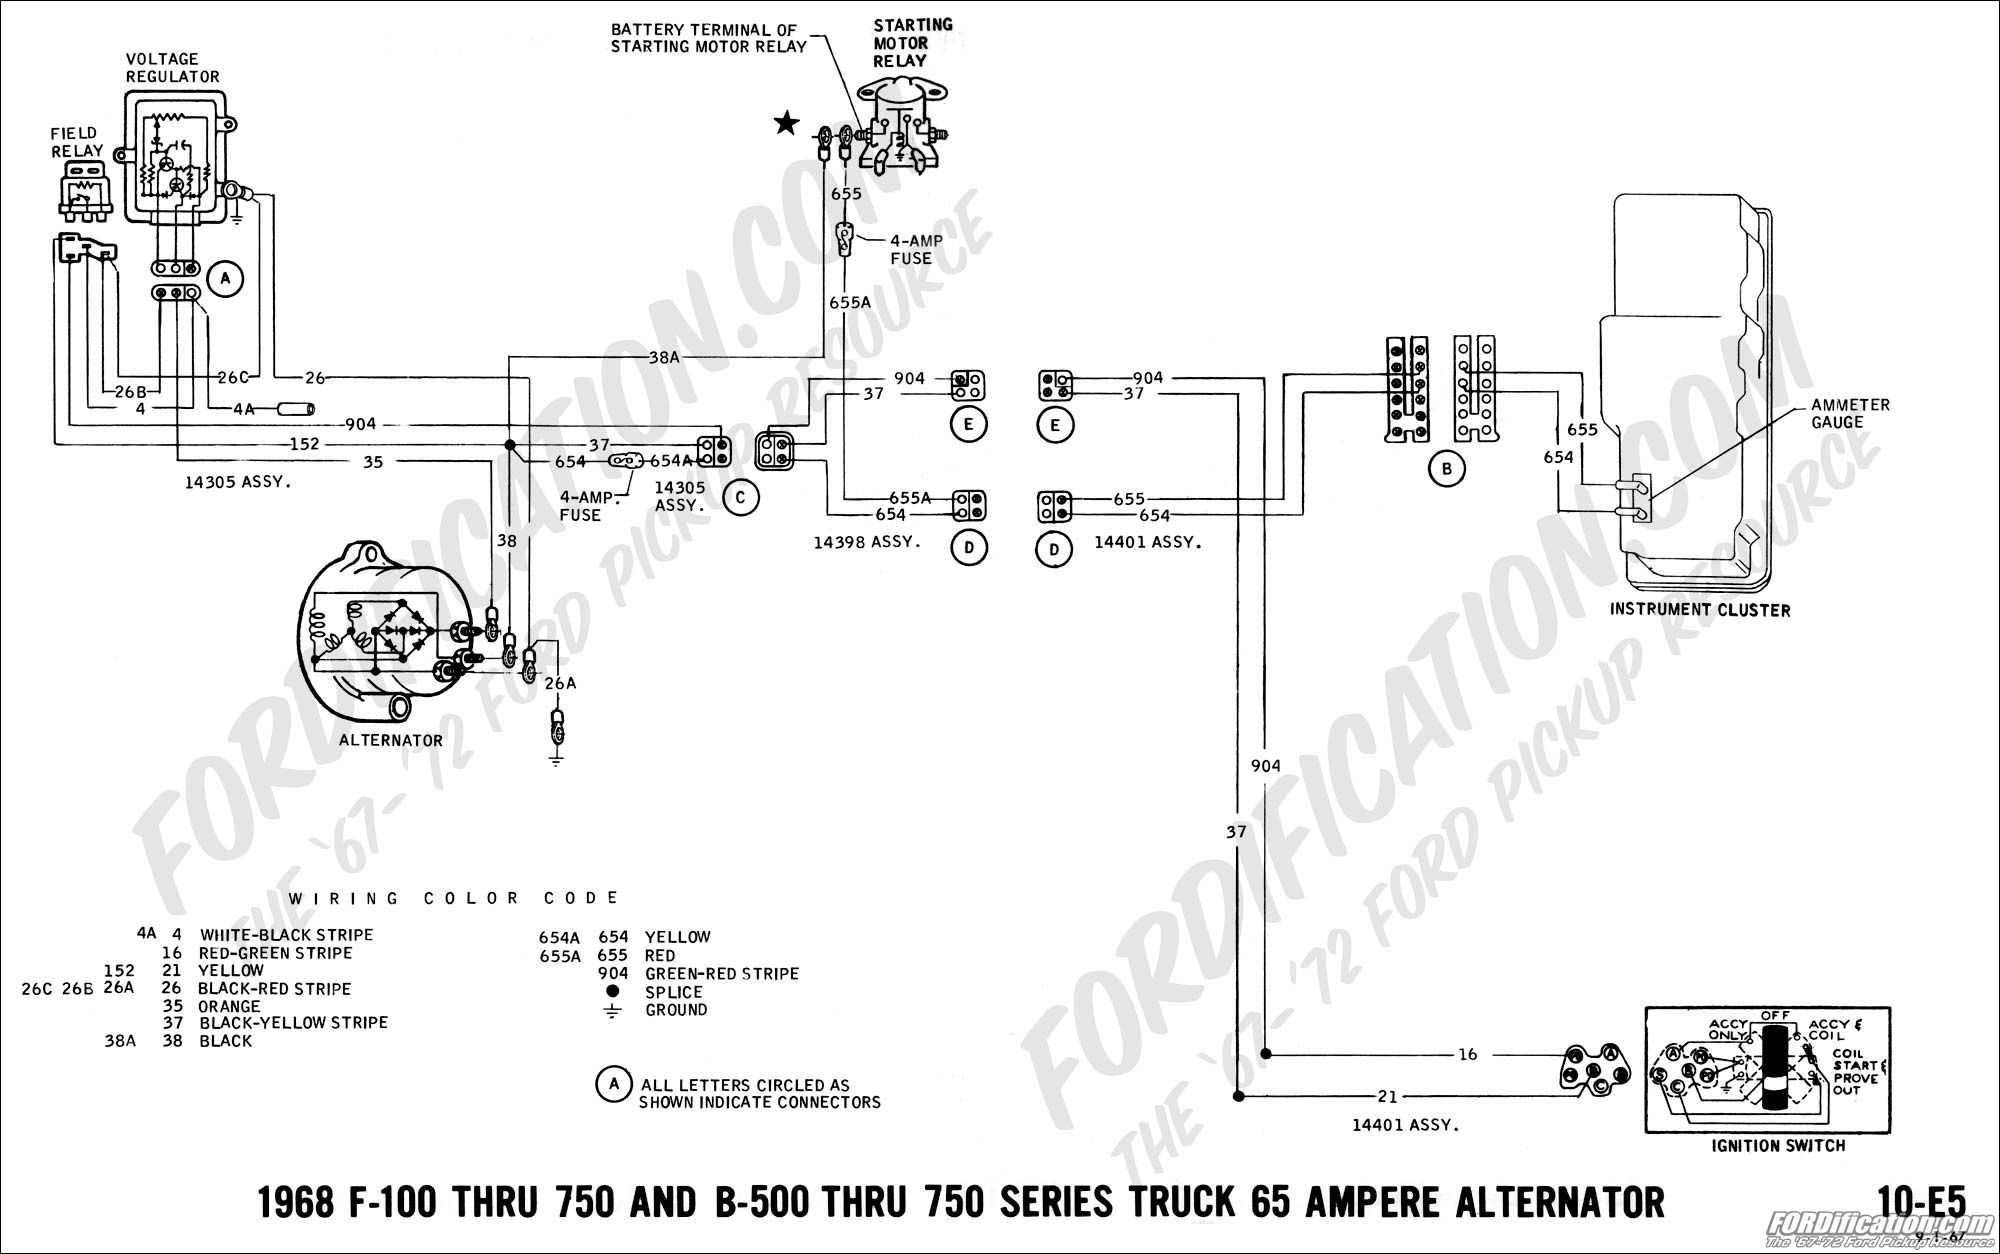 1978 f150 alternator wiring diagram wiring diagram third level dodge alternator wiring diagram 1985 ford f 150 alternator wiring diagram [ 2000 x 1254 Pixel ]